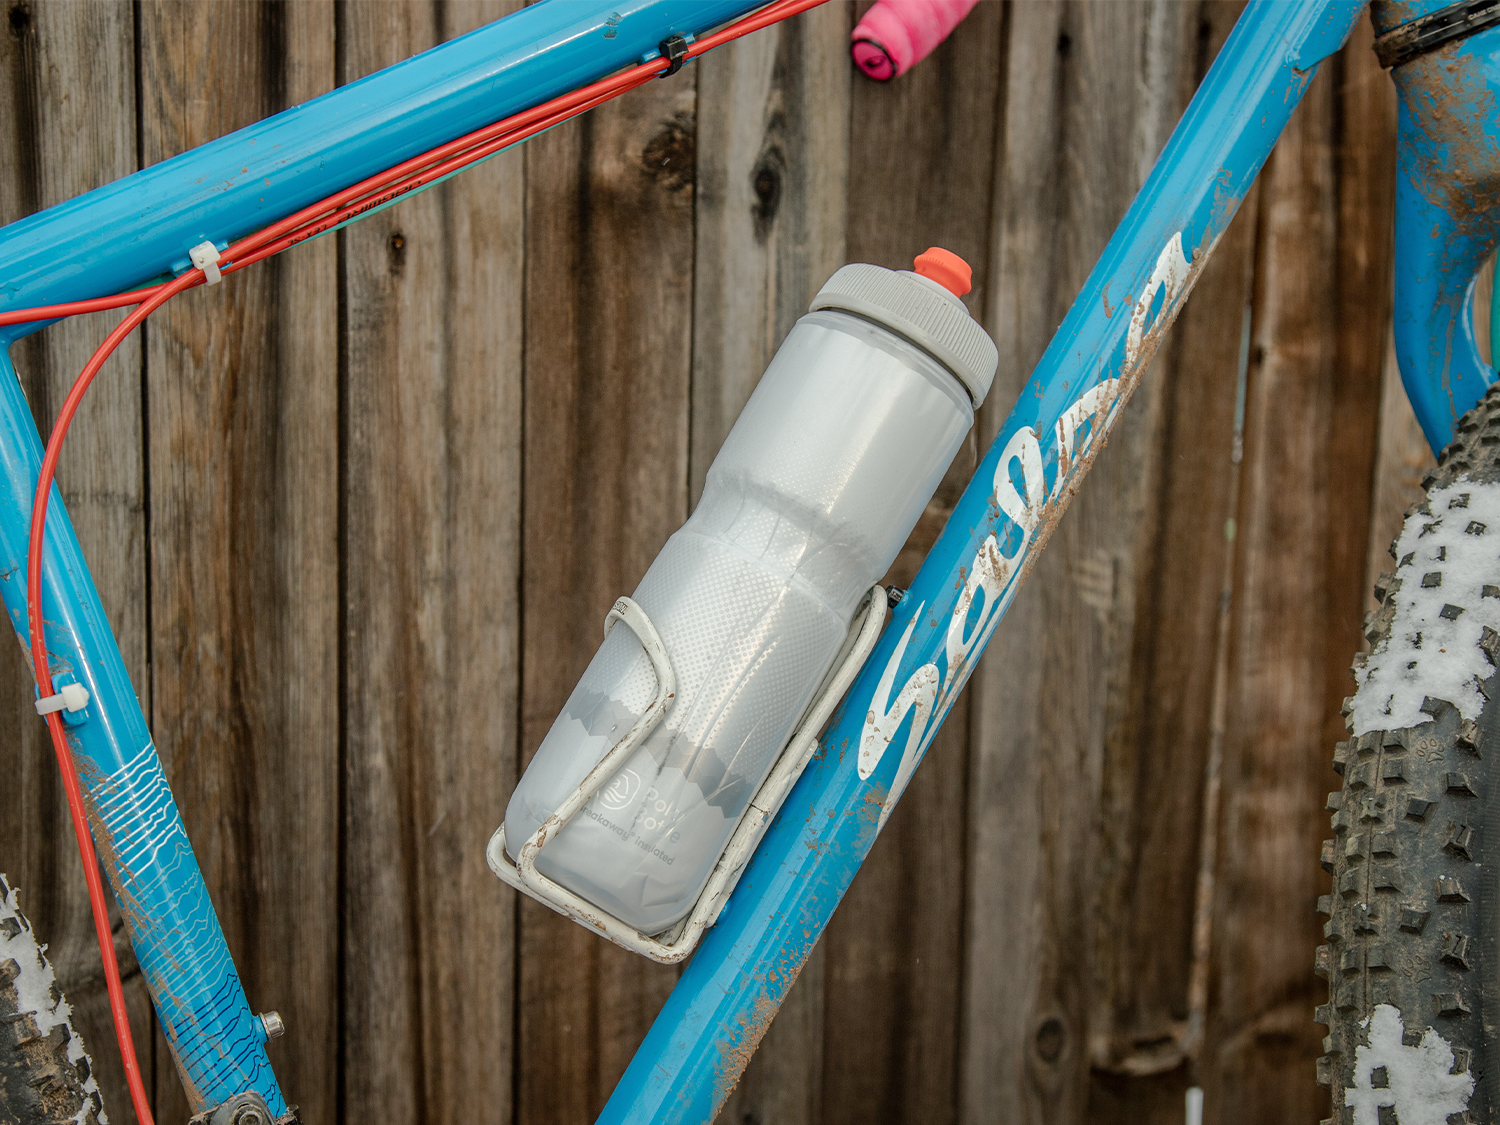 Polar bottle on bike